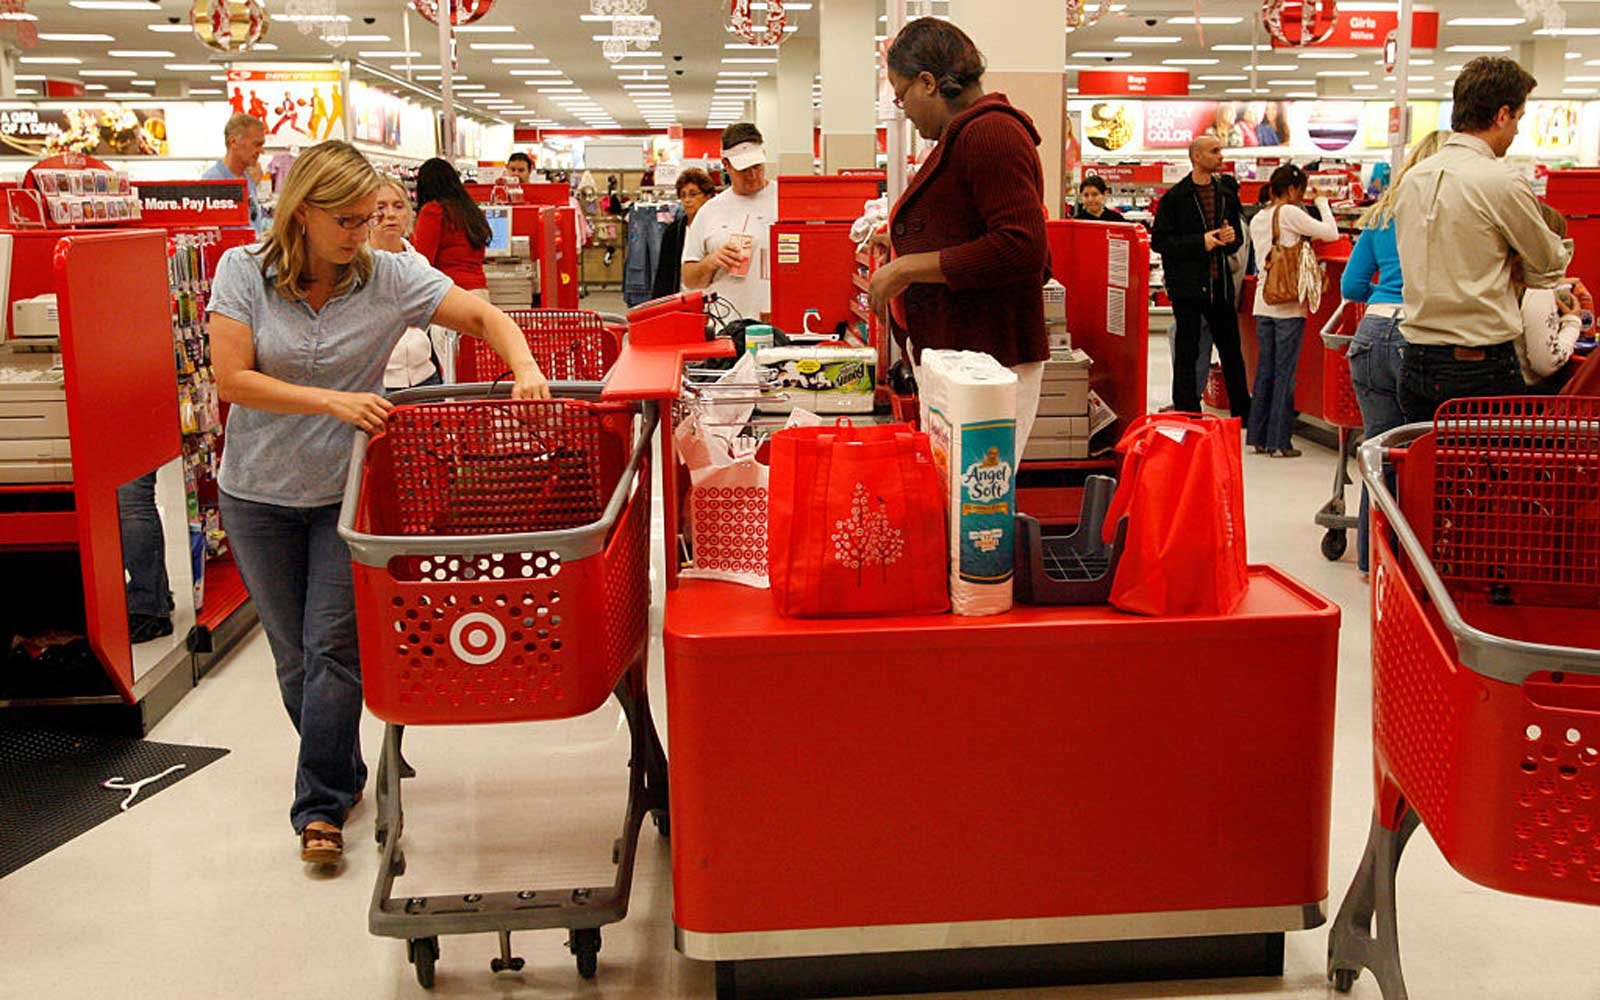 Shoppers in the check out line of the Target Store in the new Westfield Shopping Mall in Culver City